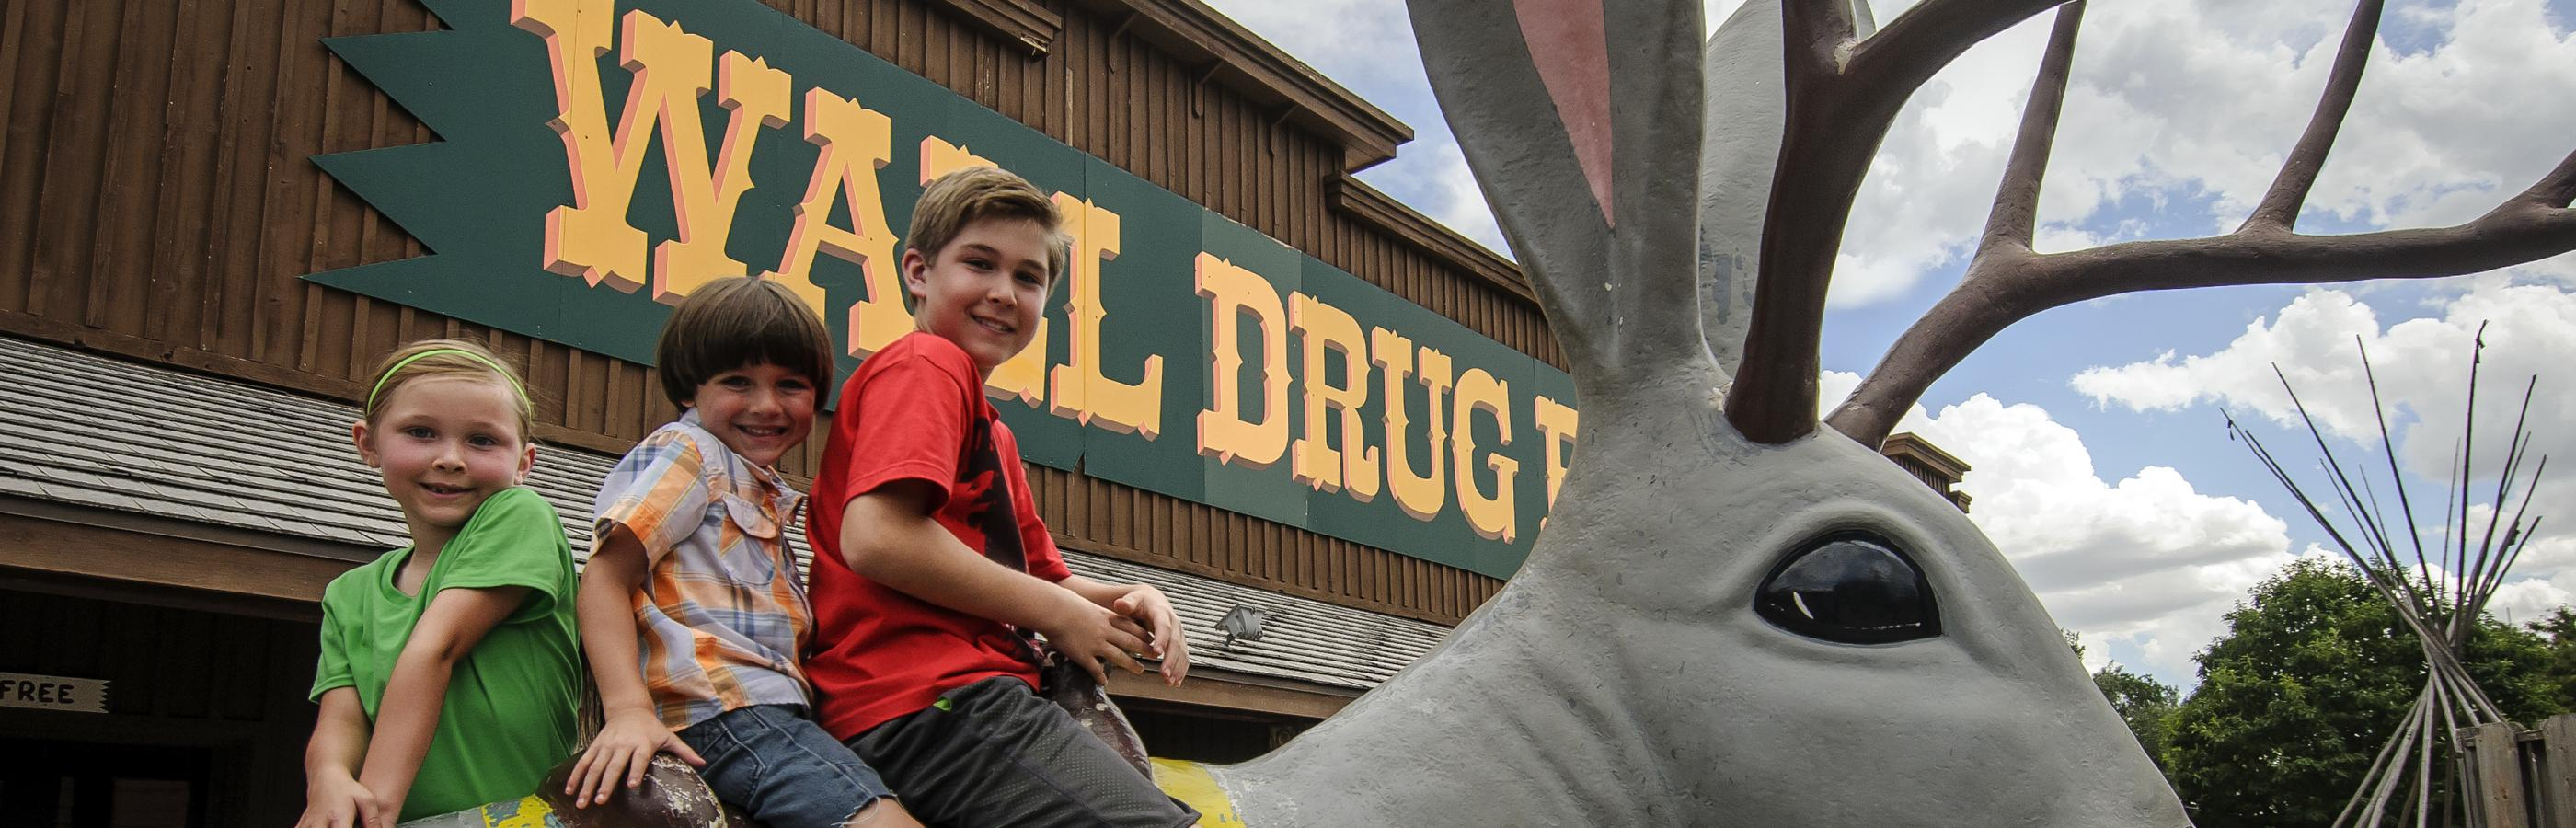 Kids Sitting on the Jack Rabbit at Wall Drug